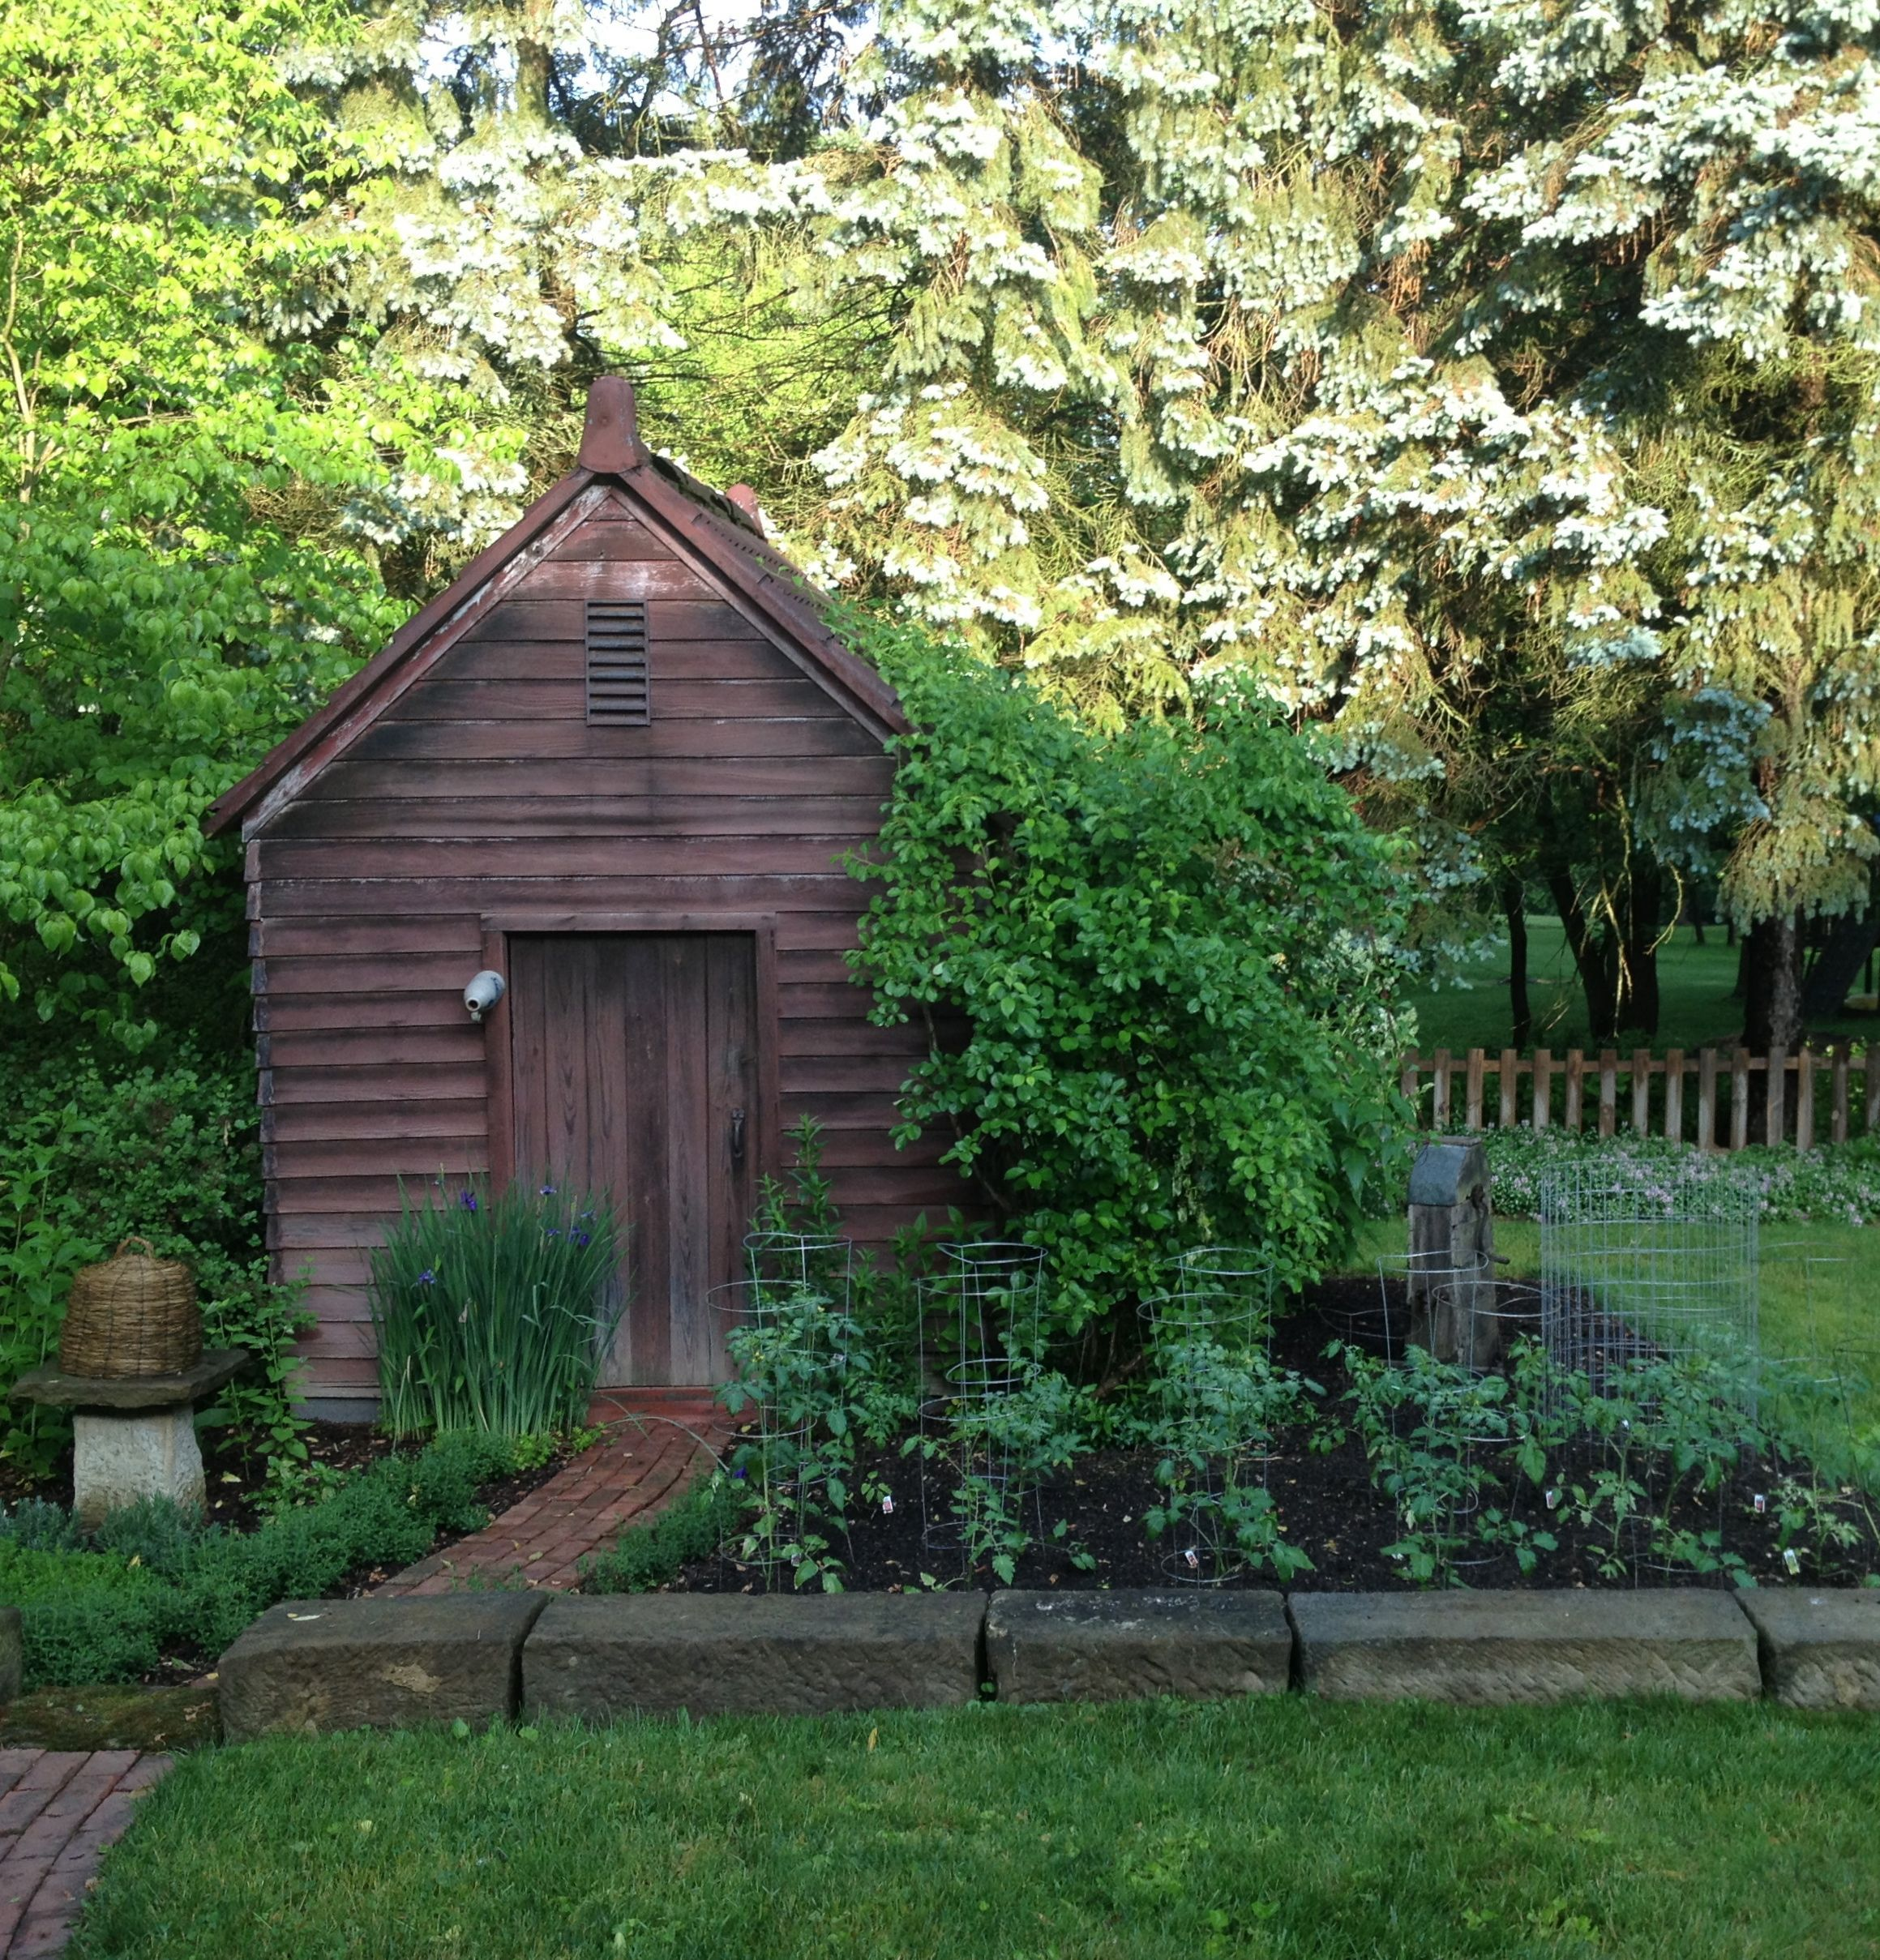 garden house | Potting Shed | Pinterest | Garden houses, Gardens and ...